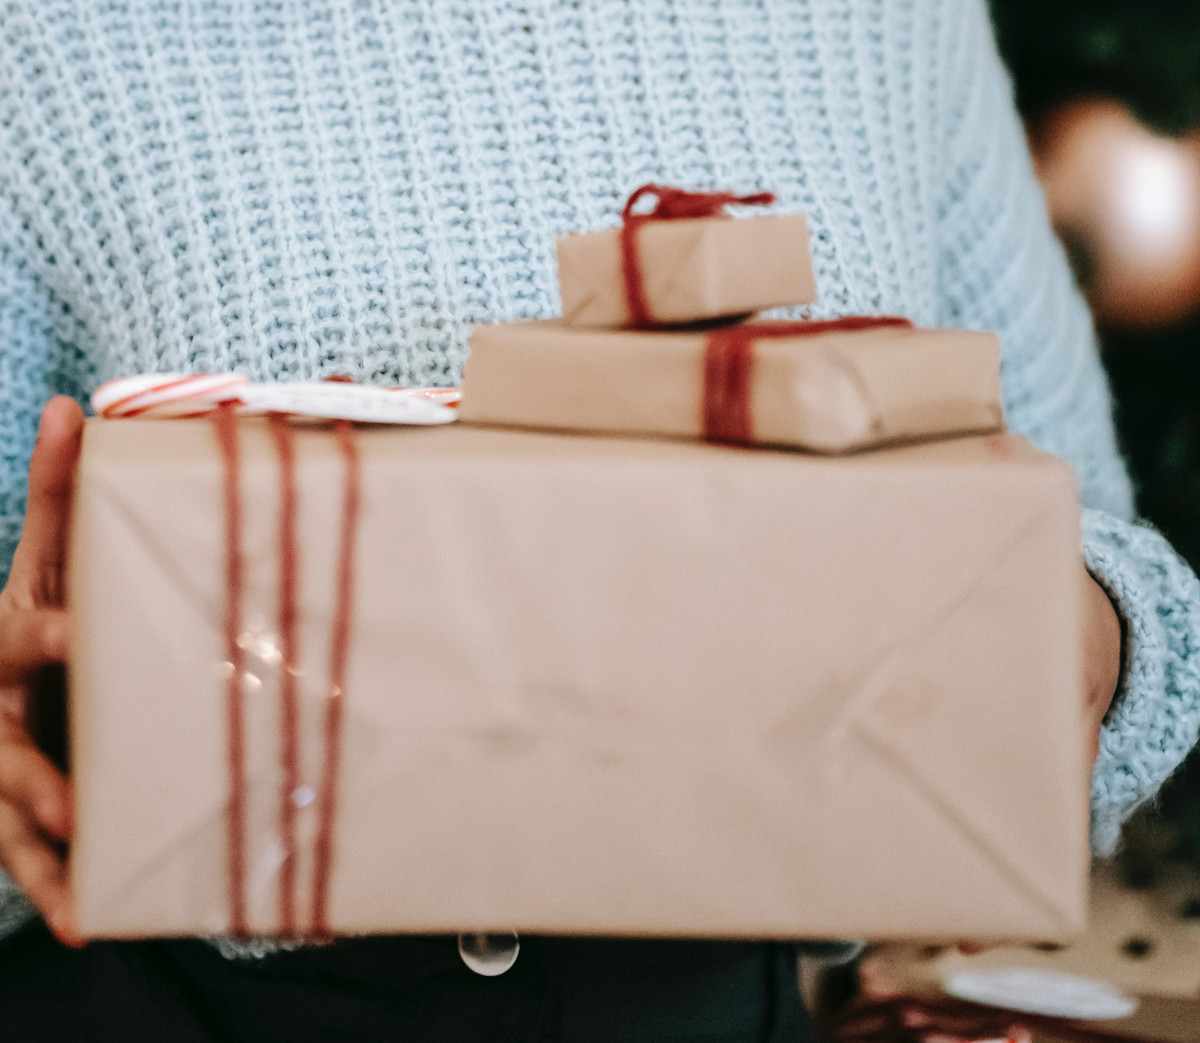 There are plenty of eco-friendly ways to wrap and decorate gifts. Photo by Liza Summer from Pexels